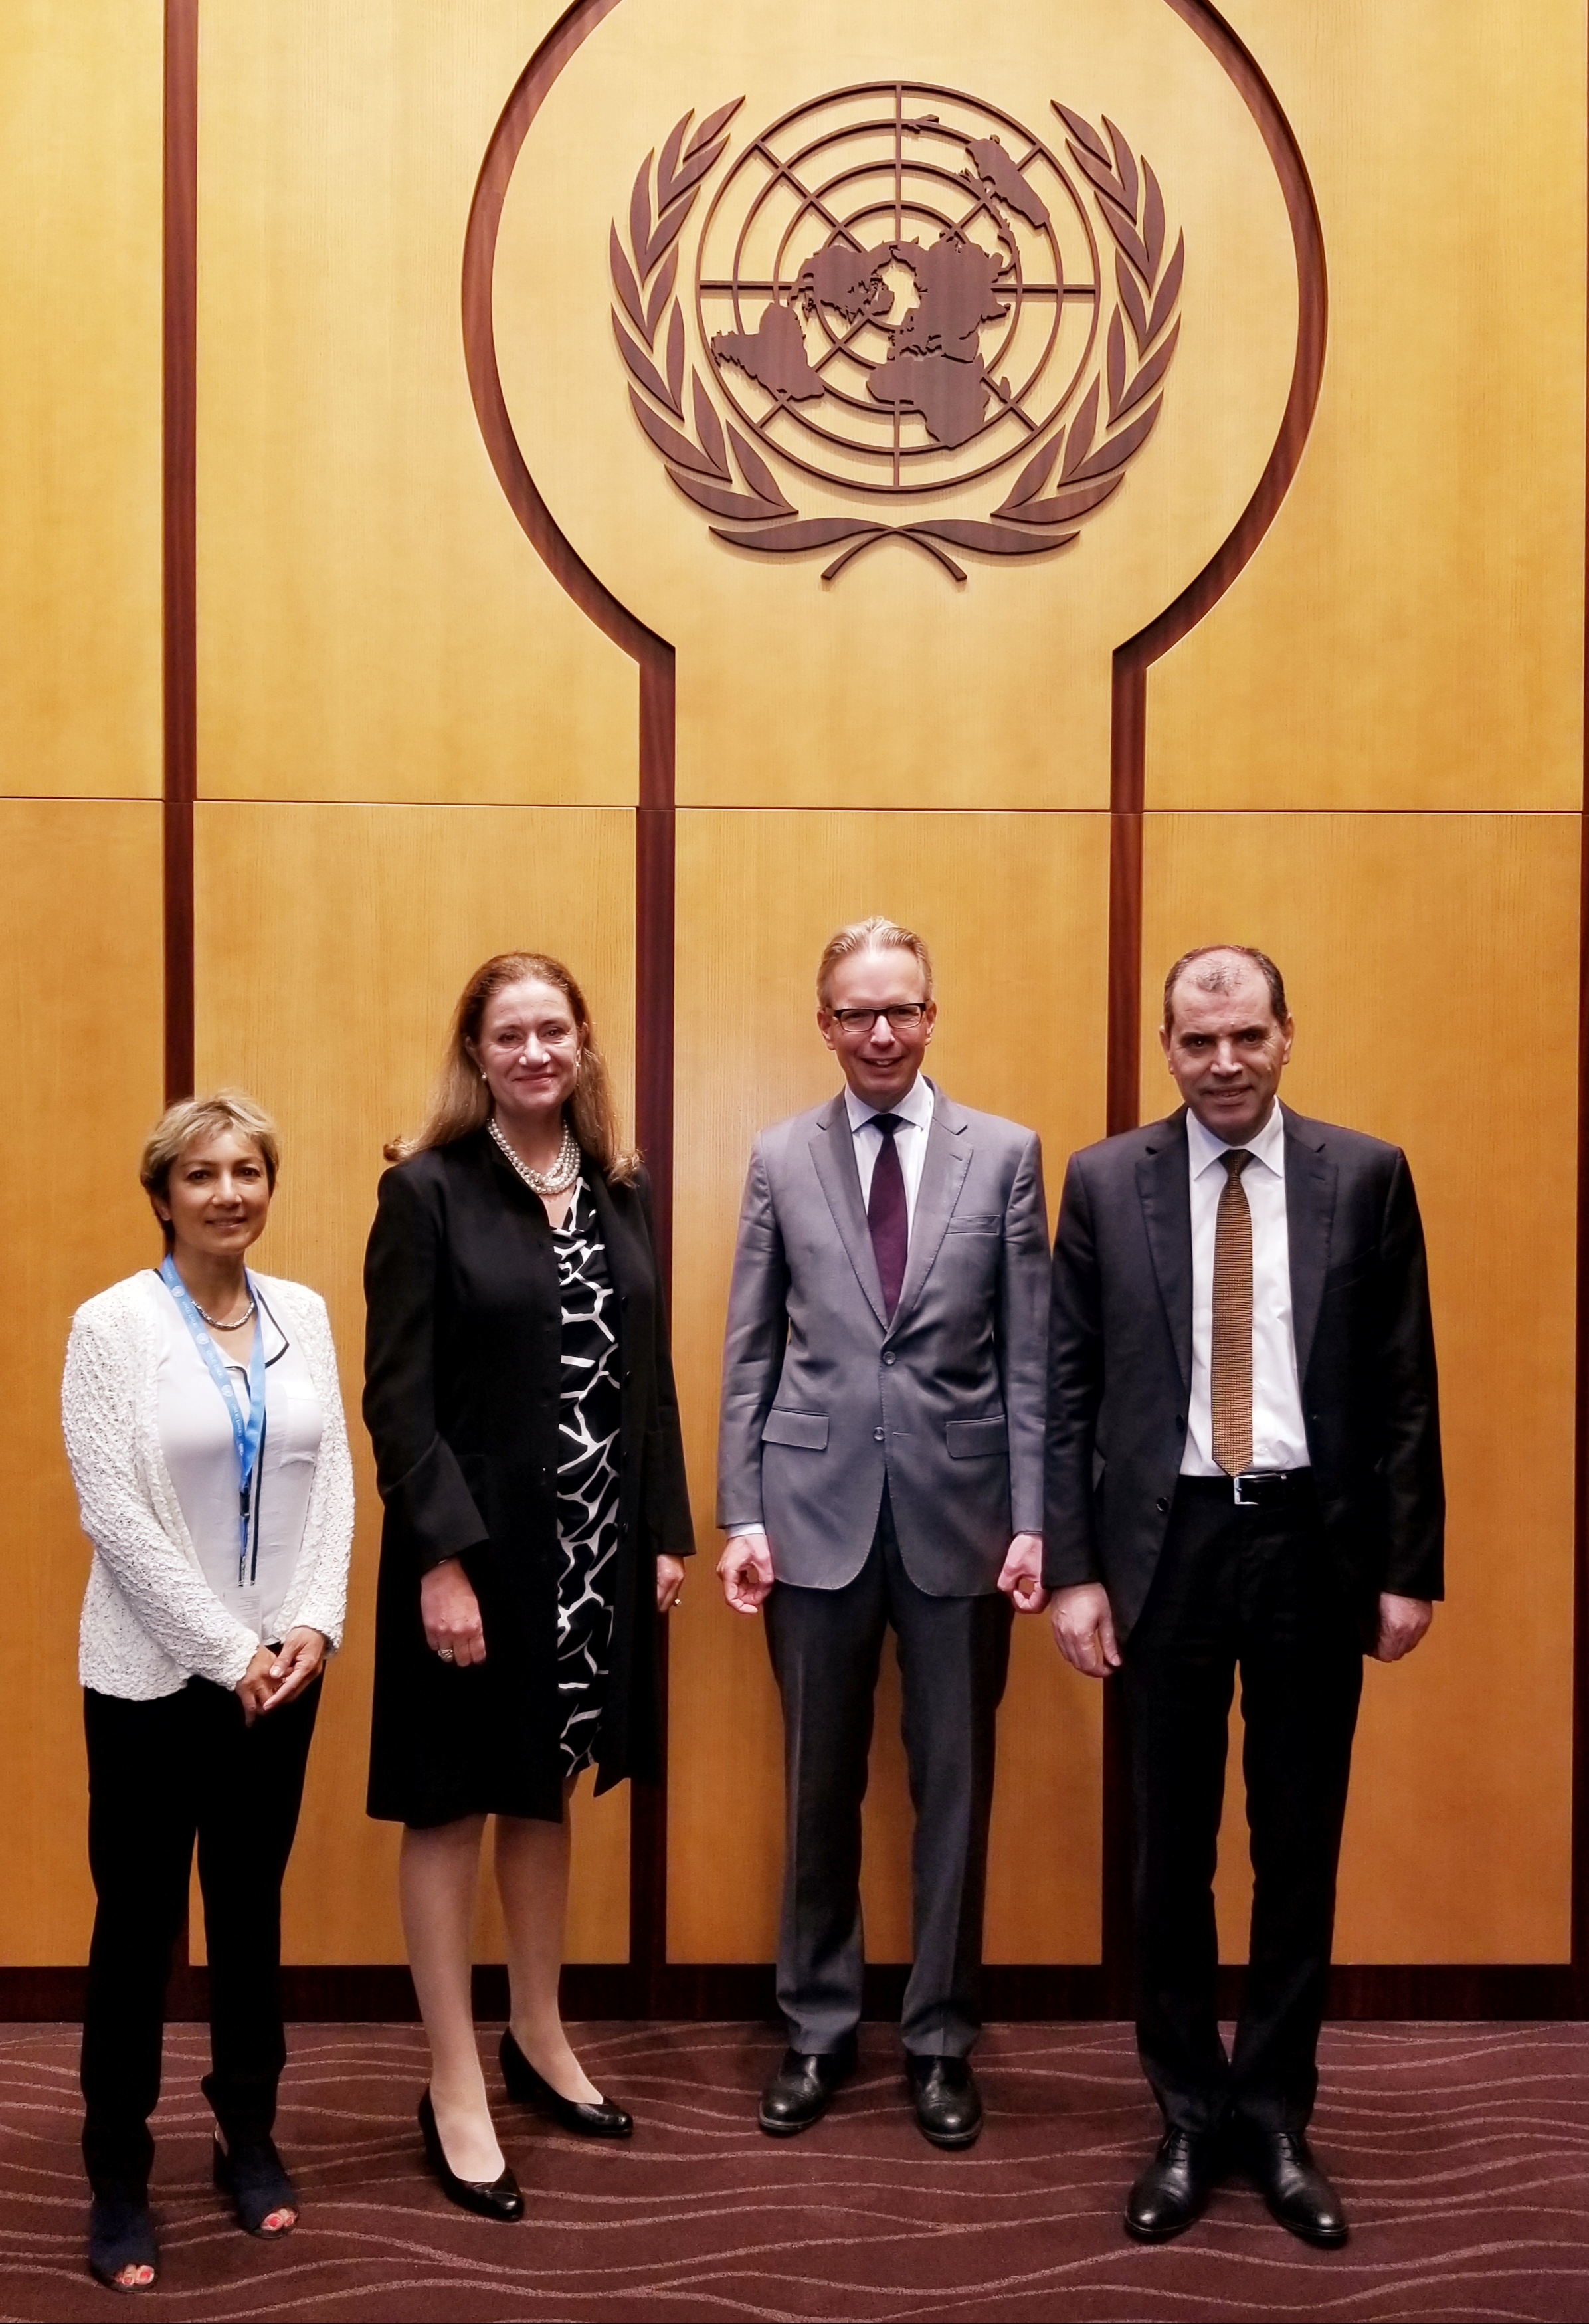 Ani Zonneveld stands with the Permanent Representatives of the Kingdom of the Netherlands, European Union, and Tunisia (from left to right).